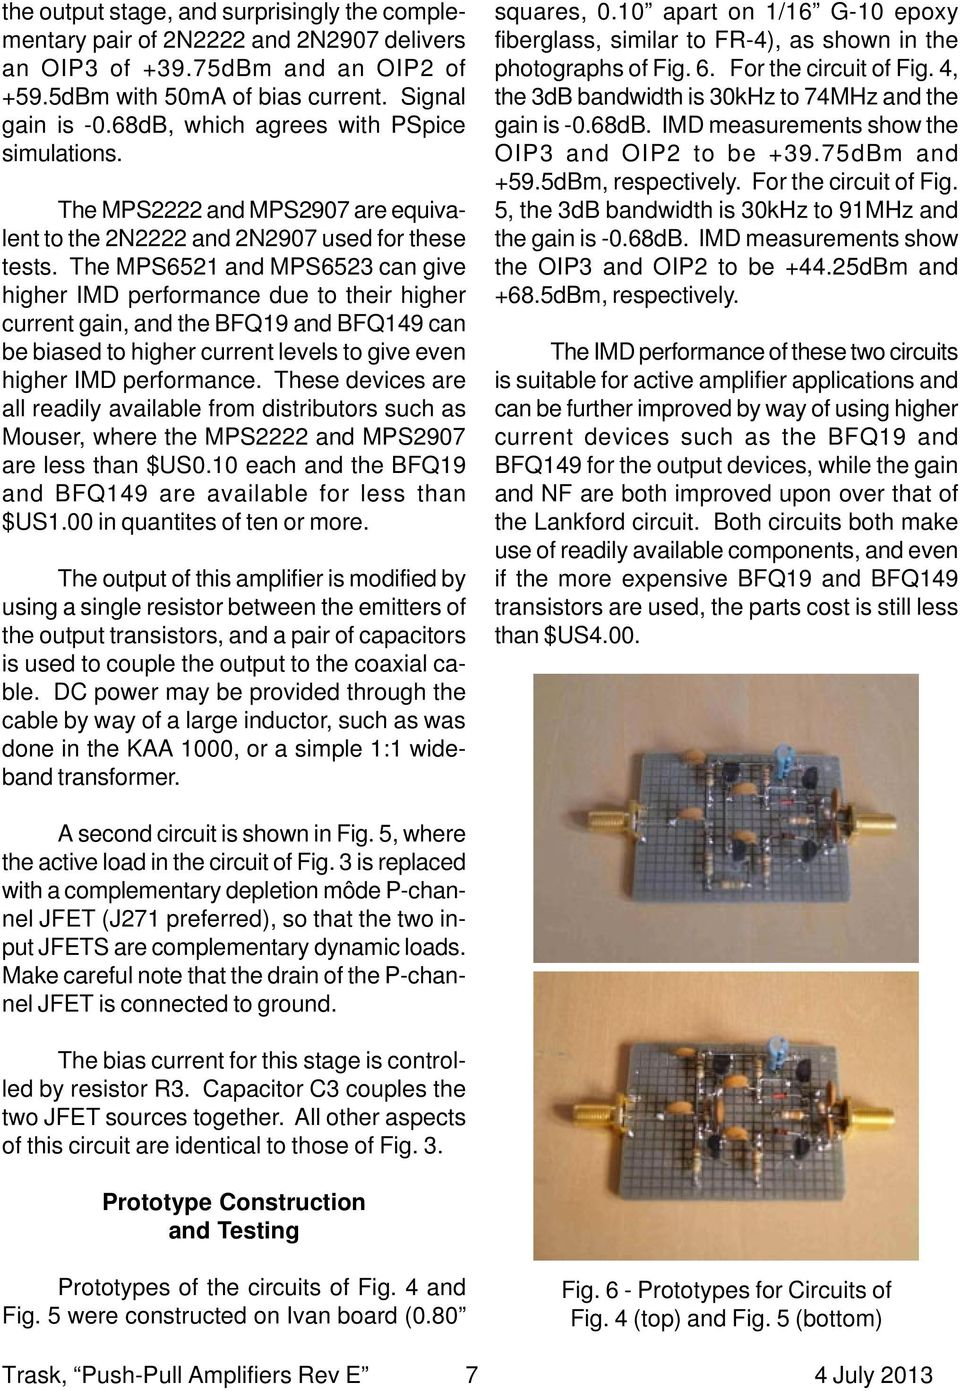 Complementary Push Pull Amplifiers For Active Antennas A Critical Tda2050 Amplifier With Current Environmental Protection The Mps6521 And Mps6523 Can Give Higher Imd Performance Due To Their Gain